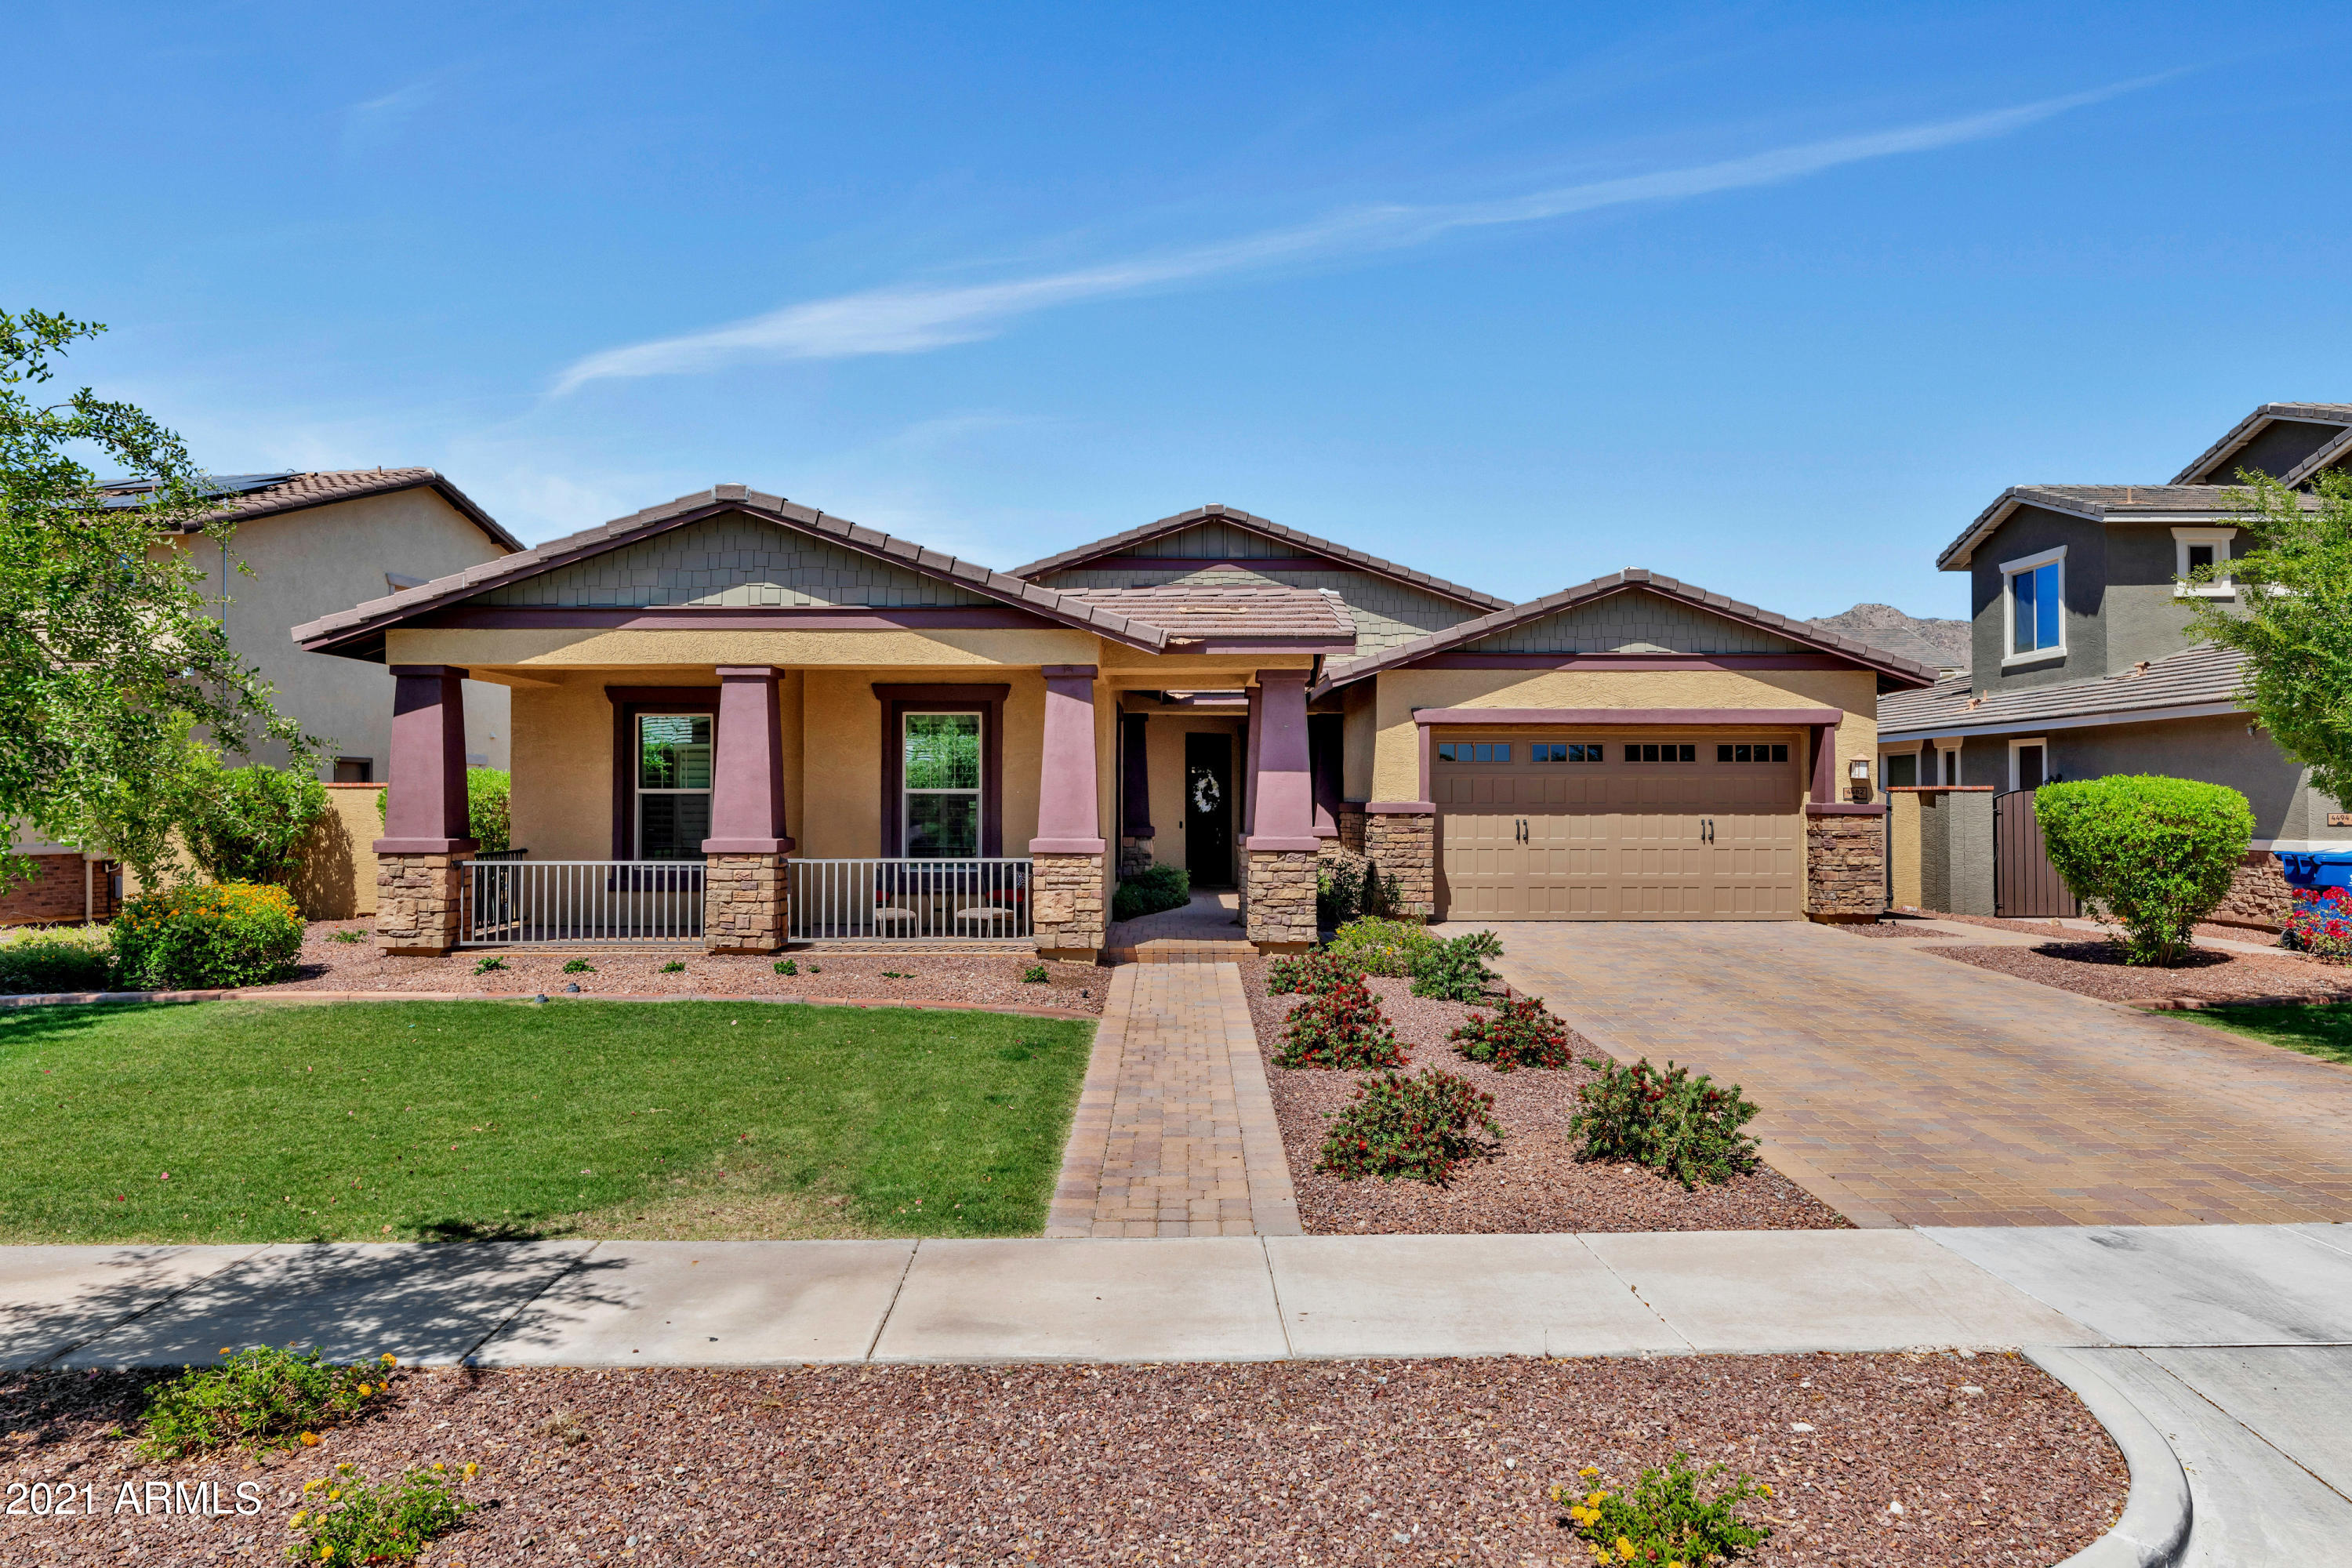 4482 GOLF Drive, Buckeye, Arizona 85396, 4 Bedrooms Bedrooms, ,2.5 BathroomsBathrooms,Residential,For Sale,GOLF,6221236